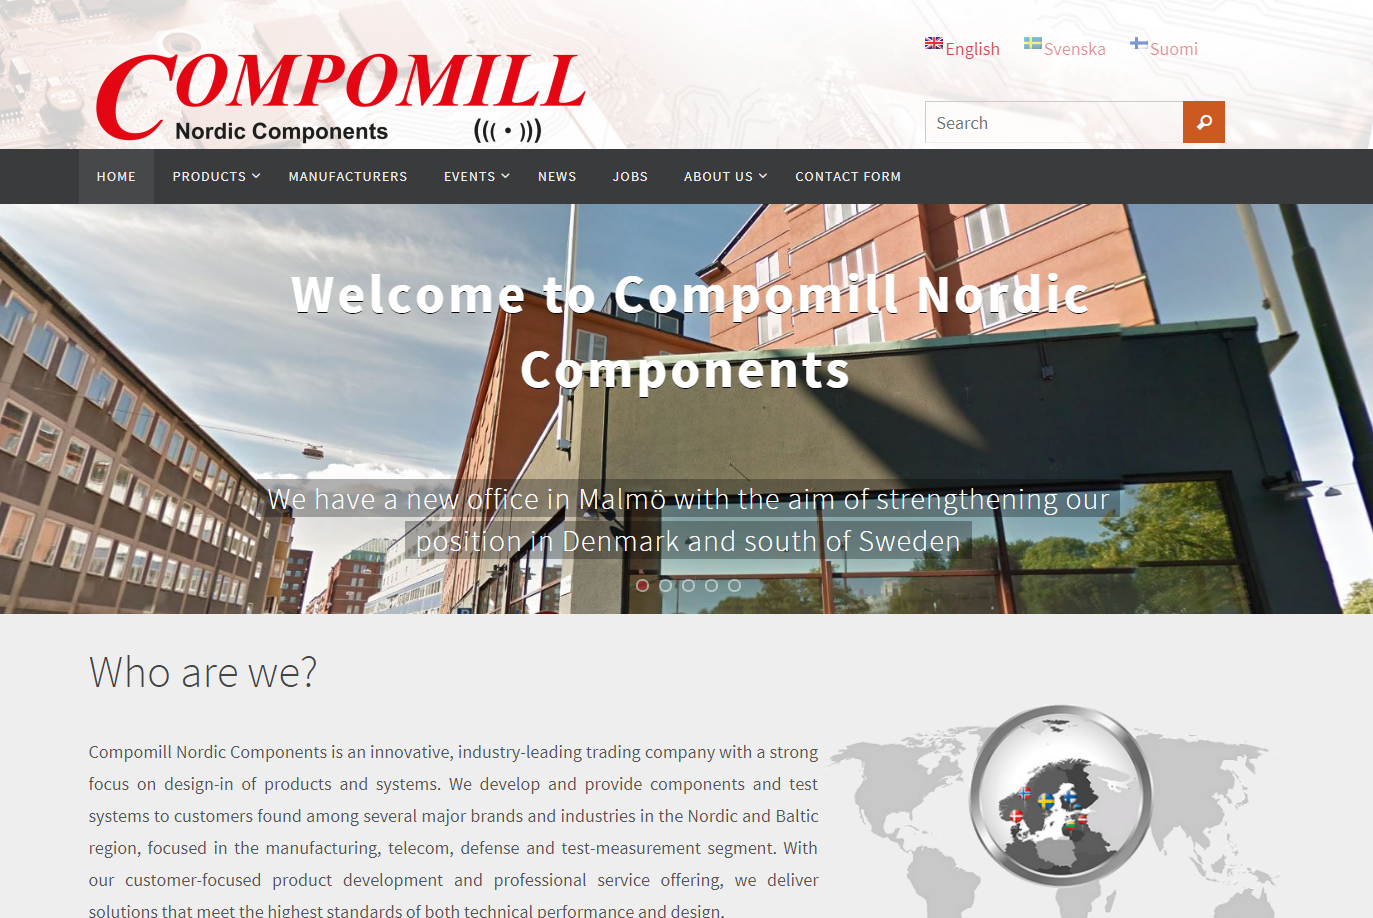 Compmill